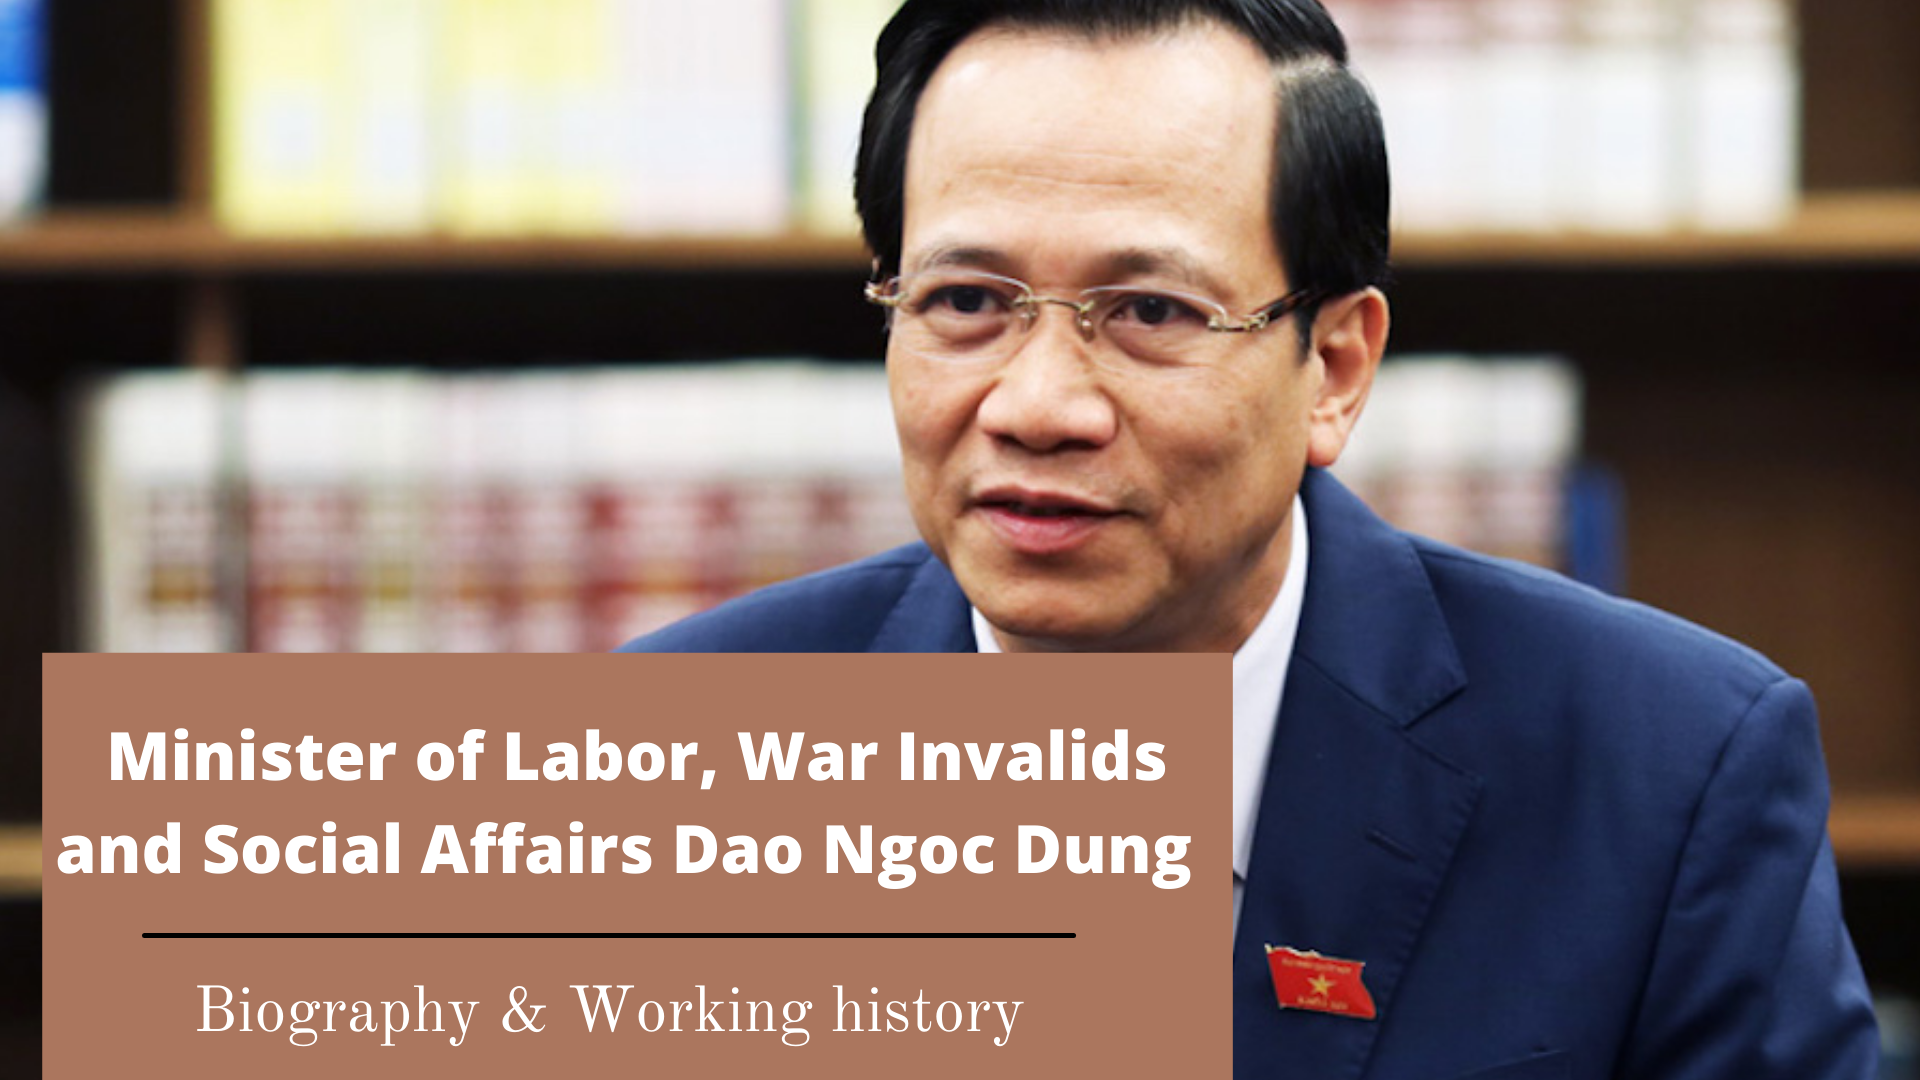 Minister of Labor, War Invalids and Social Affairs Dao Ngoc Dung: Biography and Working History